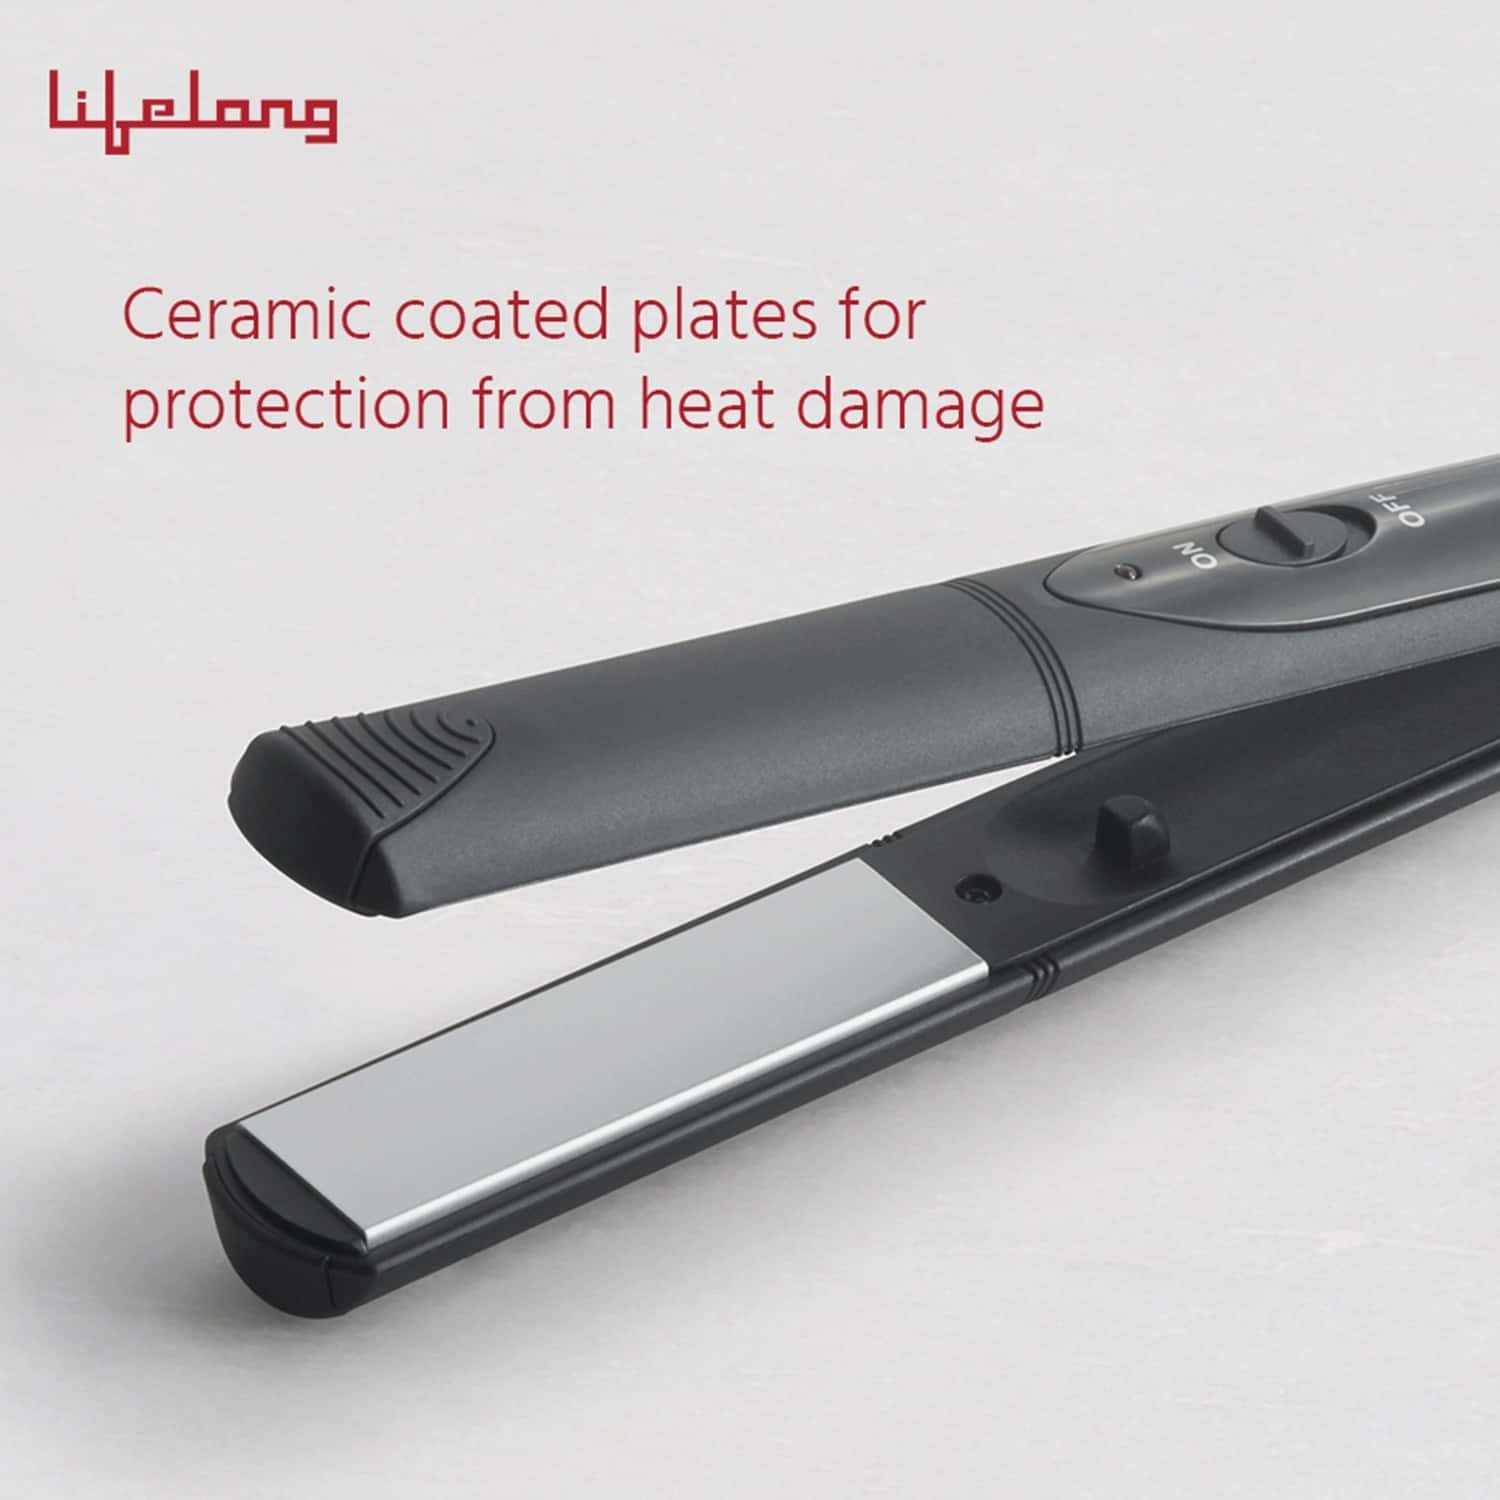 Lifelong Llpcw12 Professional Hair Straightener With Ceramic Plates And Quick Heating (black)